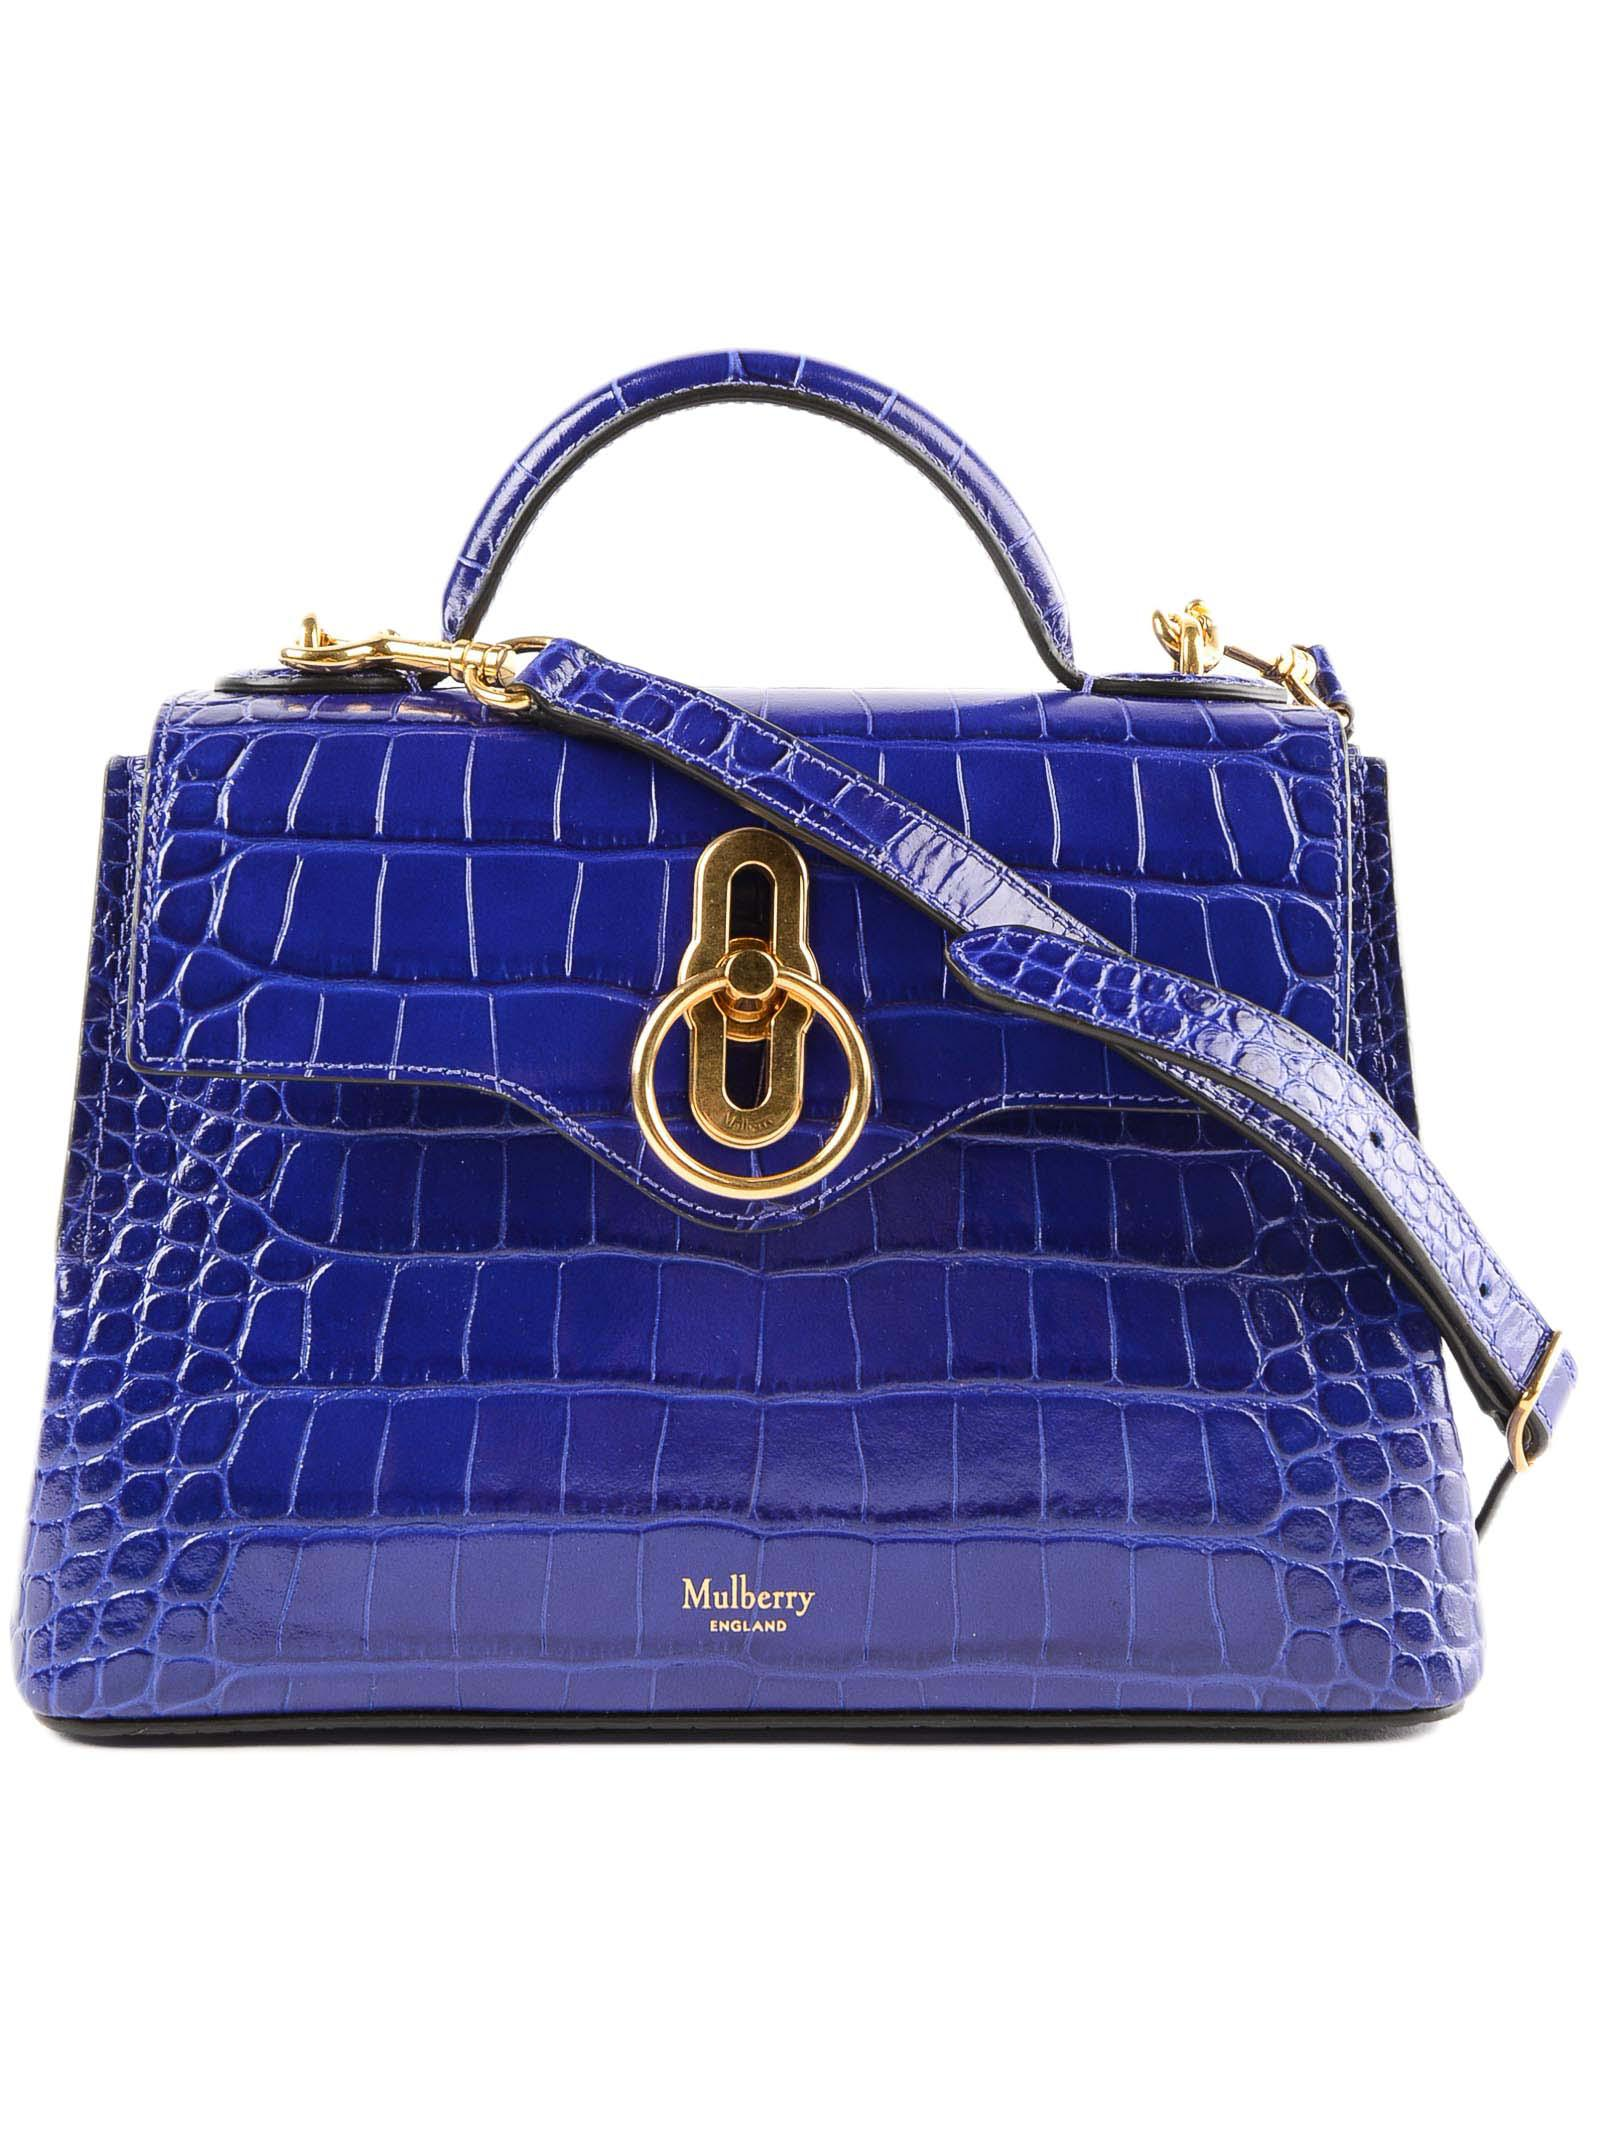 Lyst - Mulberry Mini Seaton Bag in Blue 5e47a4902d05b